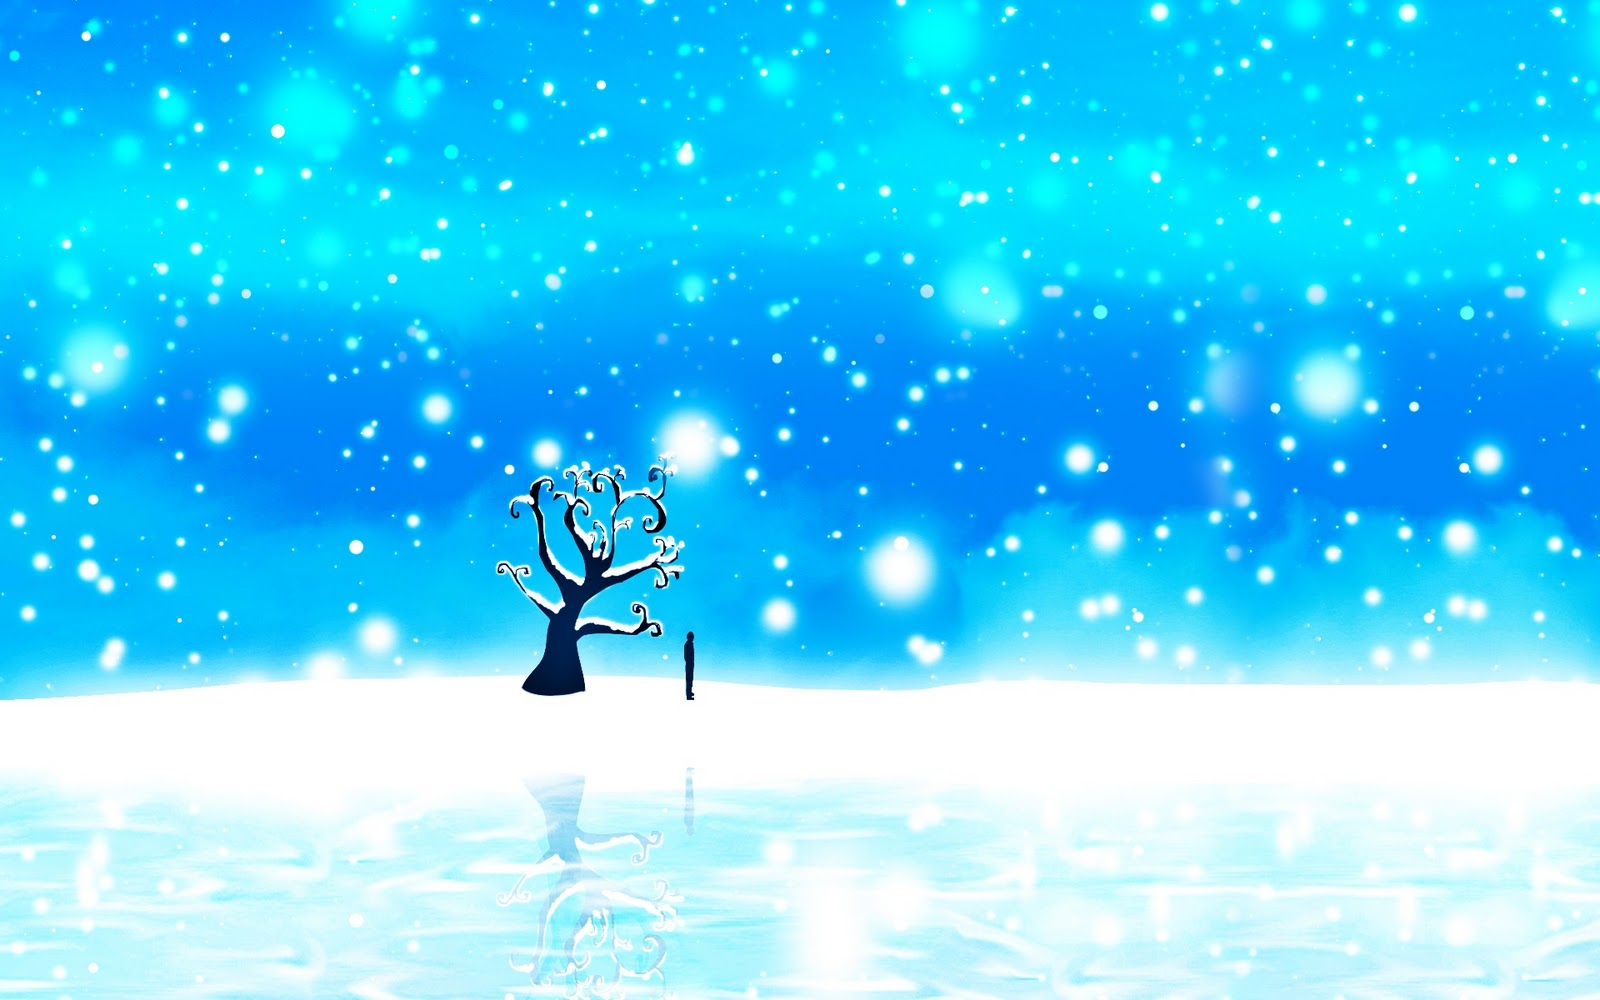 Lonely on a blue christmas hd wallpaper 1080p the - Hd christmas wallpapers 1080p ...